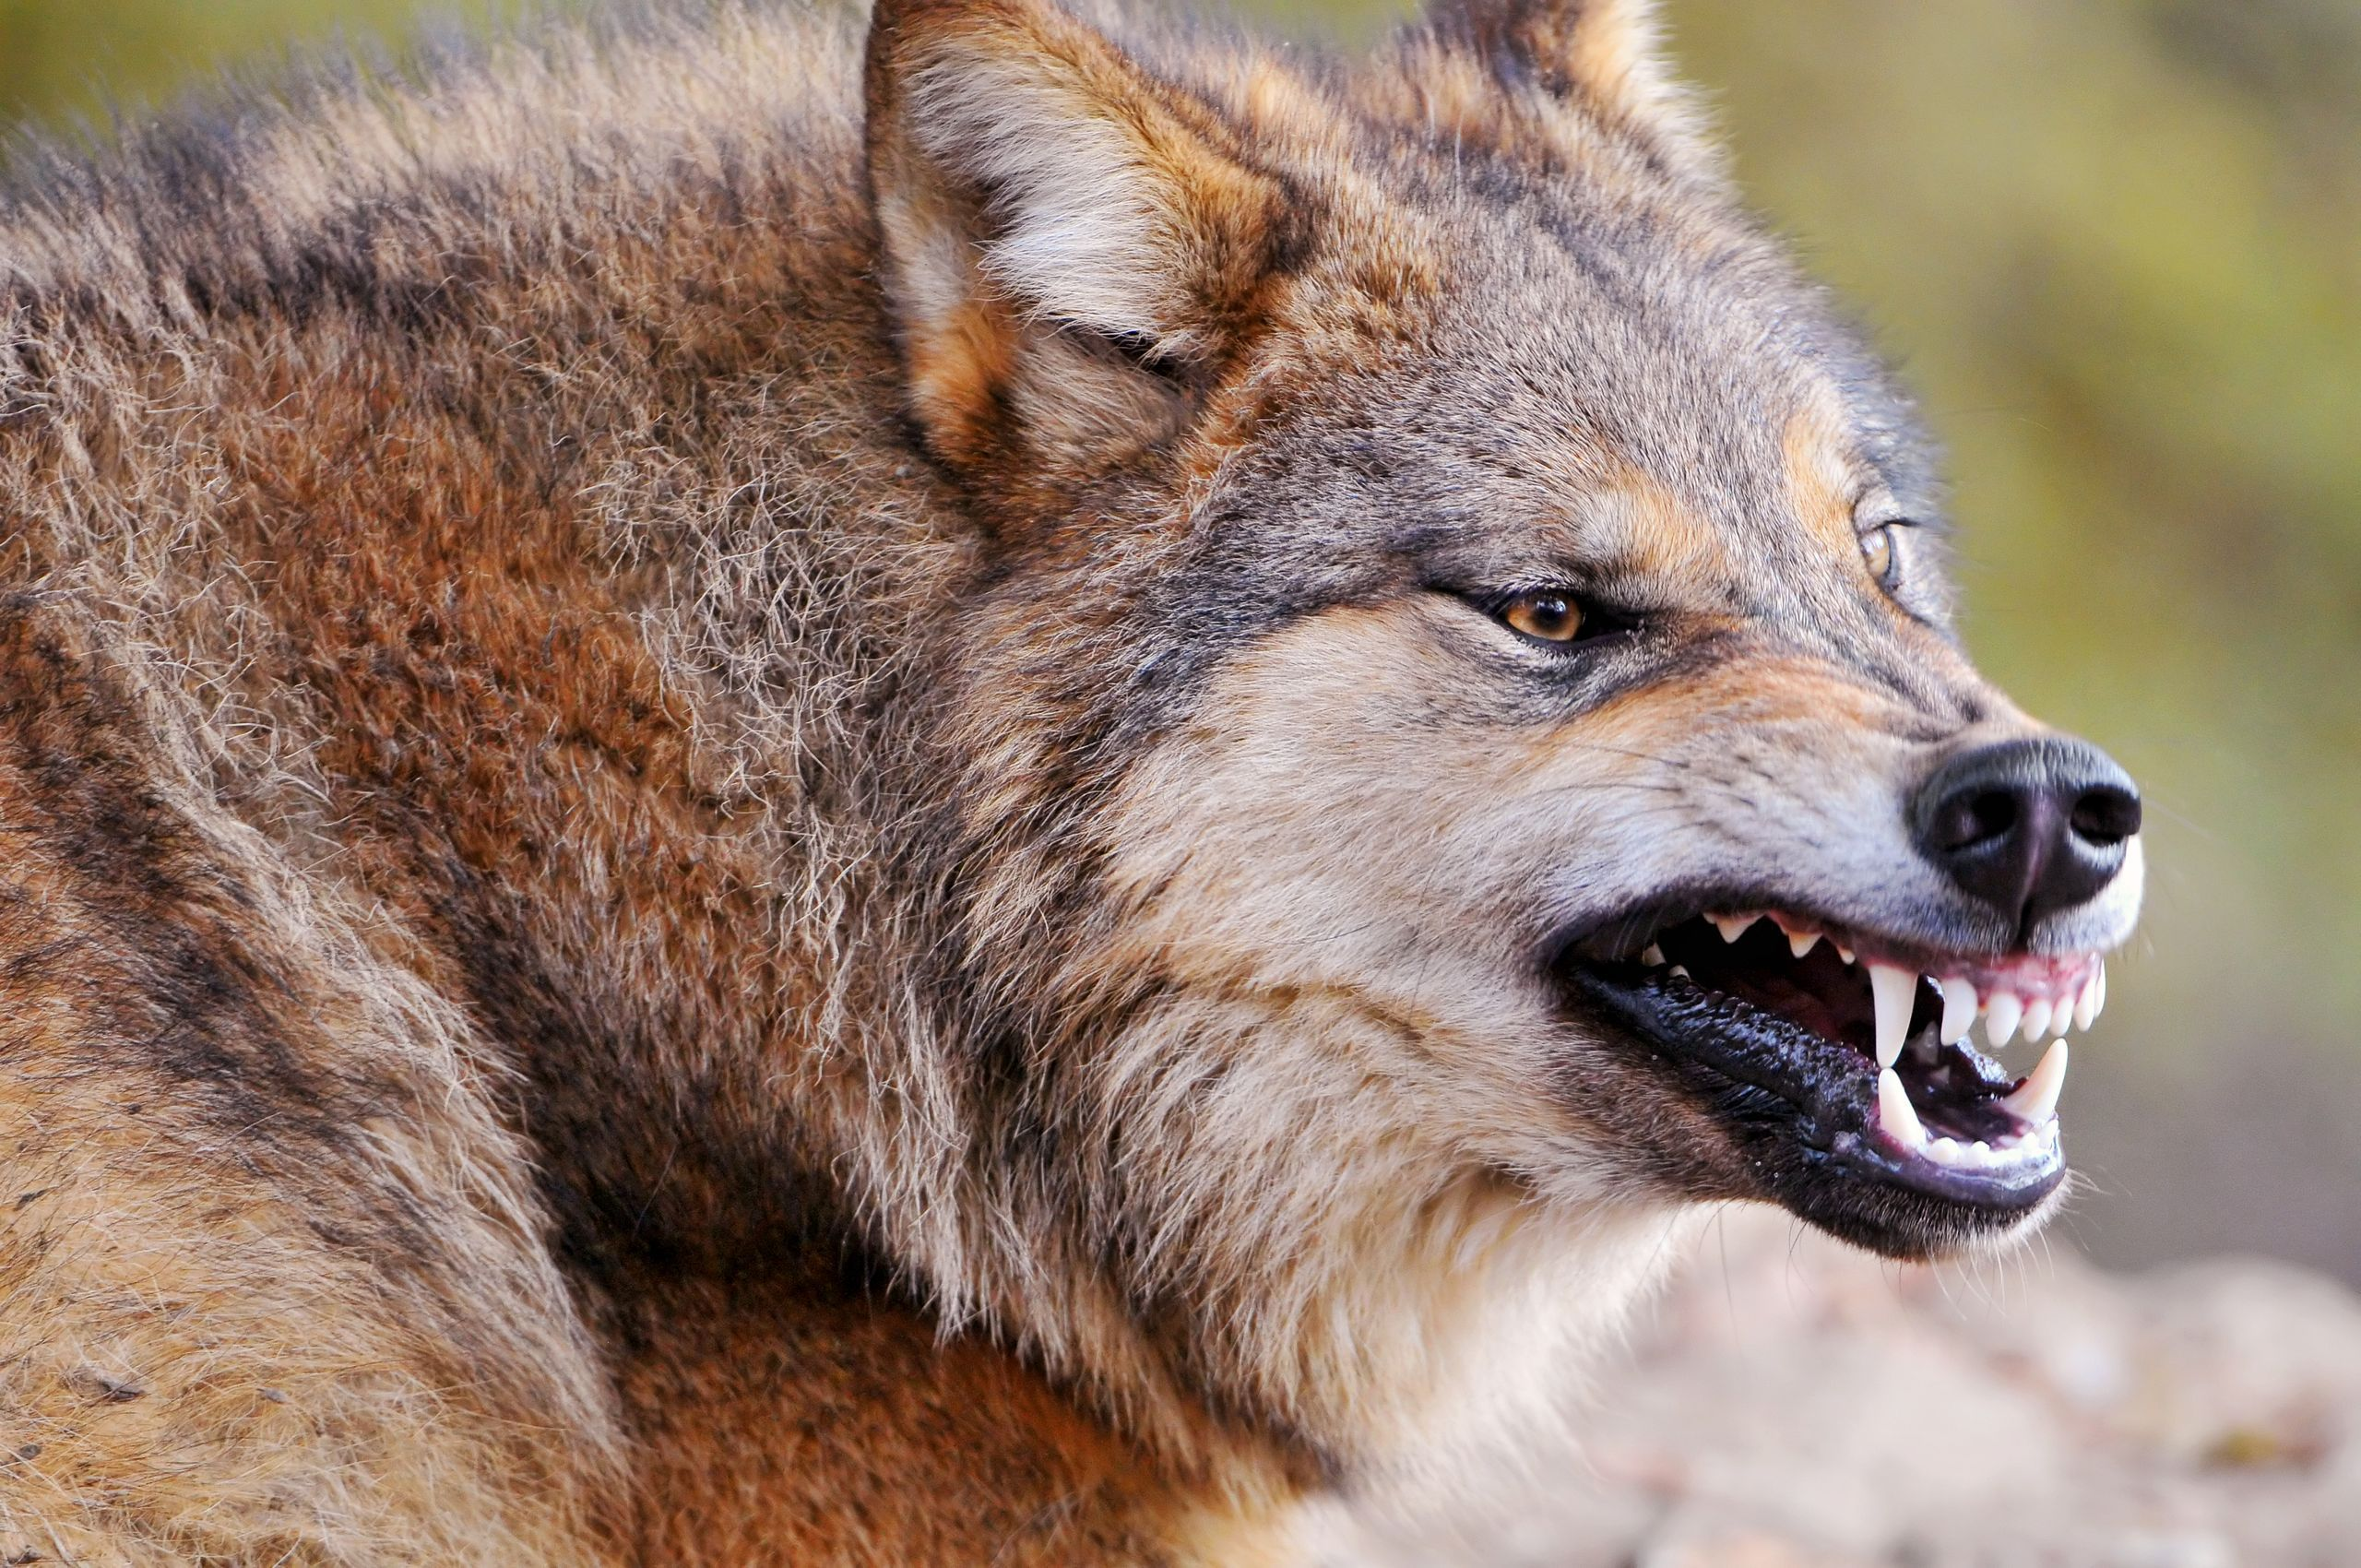 Astonishing Wolves Images Wolf Hd Wallpaper Background Photos Wolf Vs Dog Vs Coyote Wolf Vs Dog Bite Force Background Photos Wolves Images Wolf Hd Wallpaper bark post Wolf Vs Dog